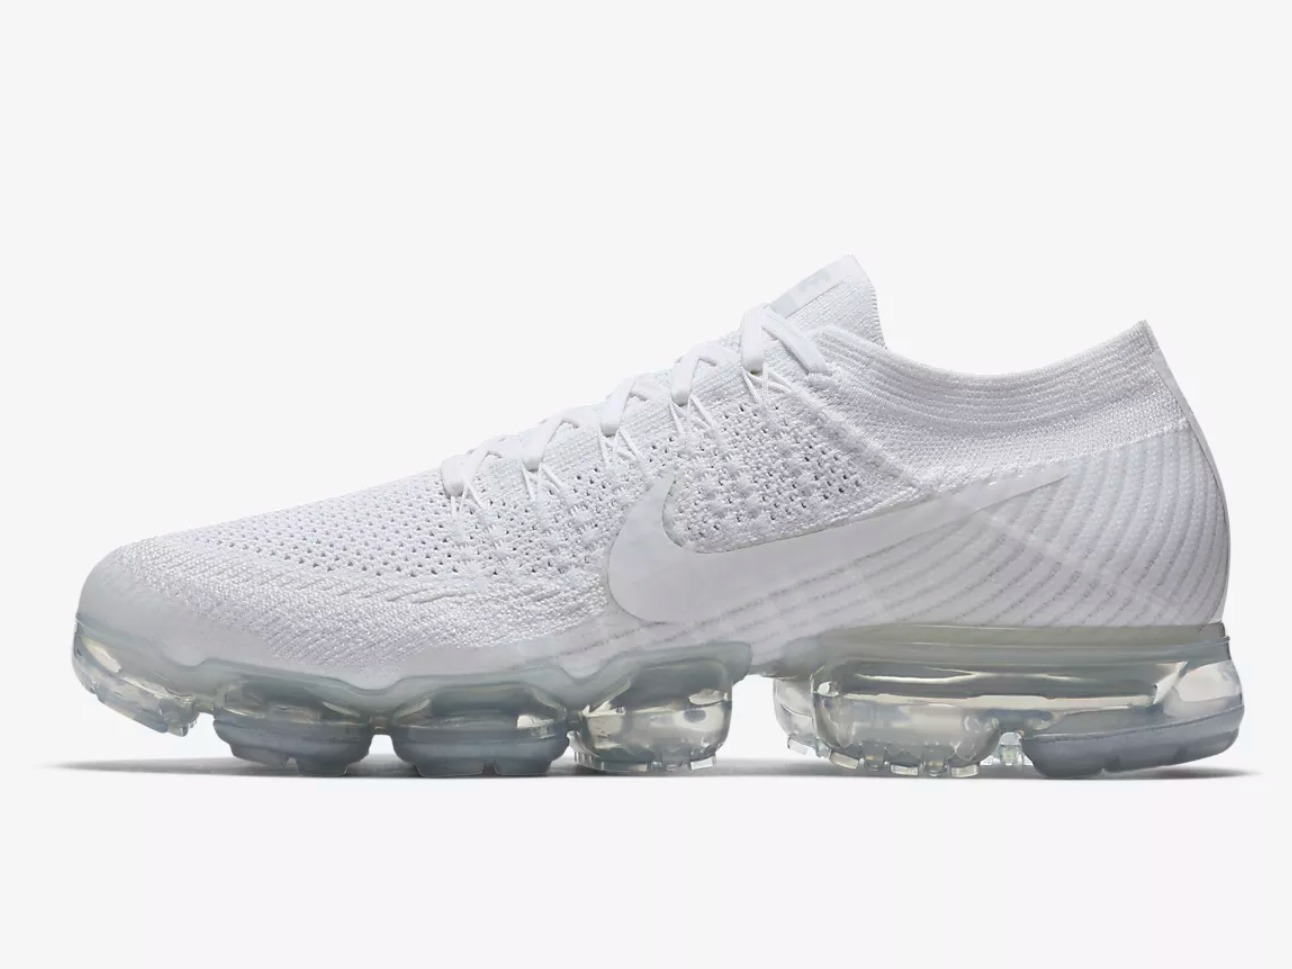 NIKE AIR VAPORMAX FLYKNIT White Men's Running Shoe ナイキ